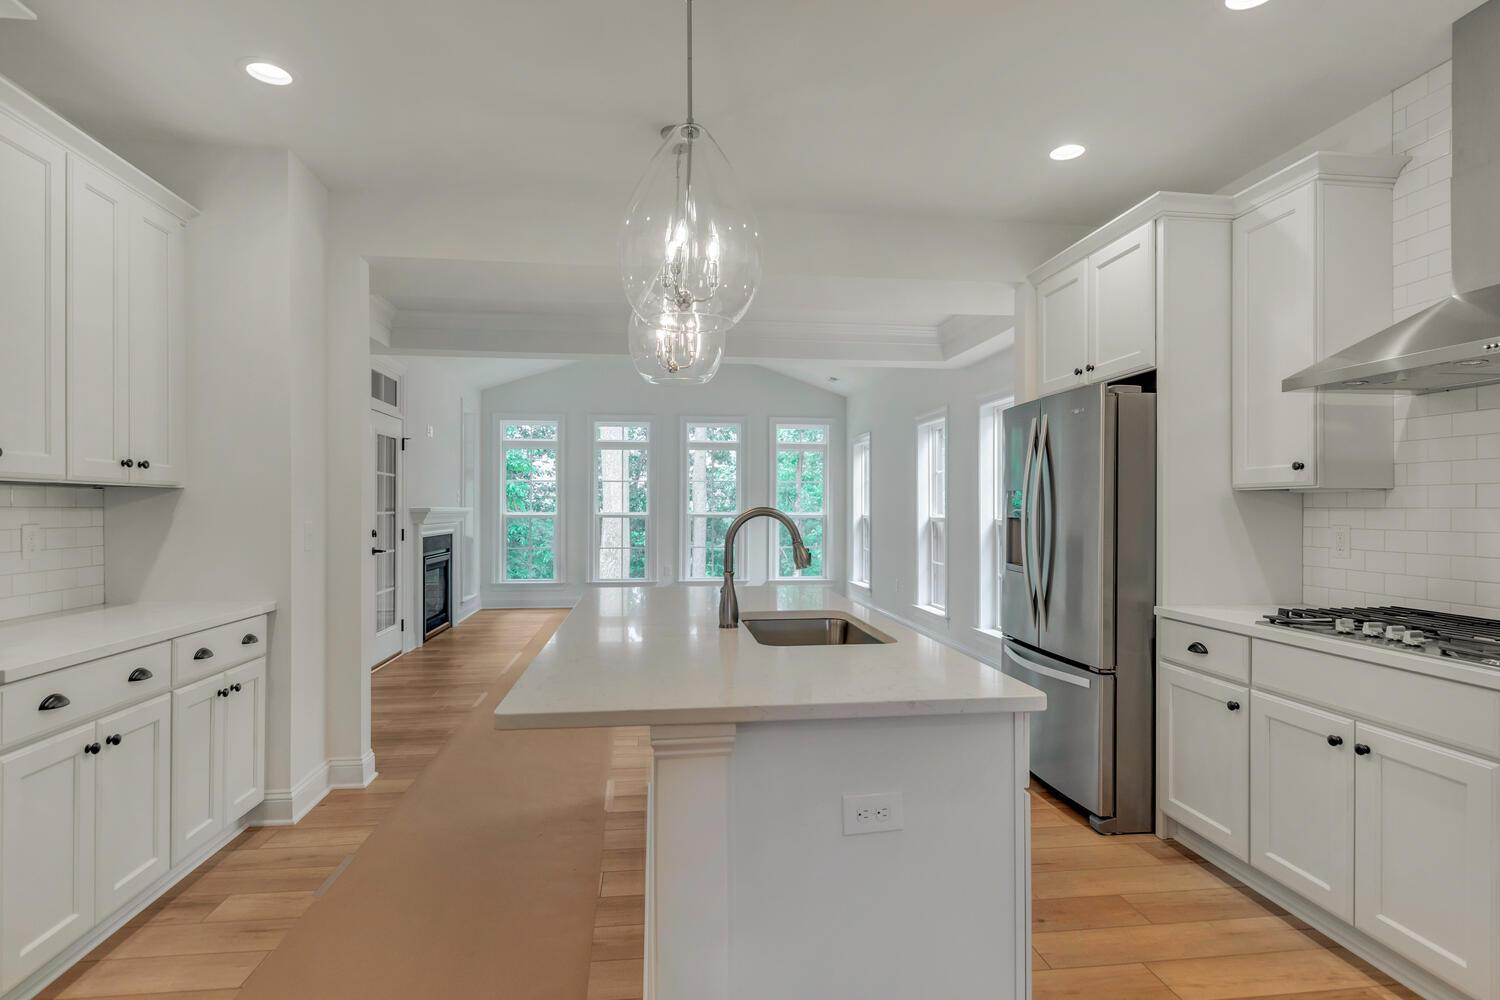 Kitchen featured in the Afton By Craig Builders in Charlottesville, VA